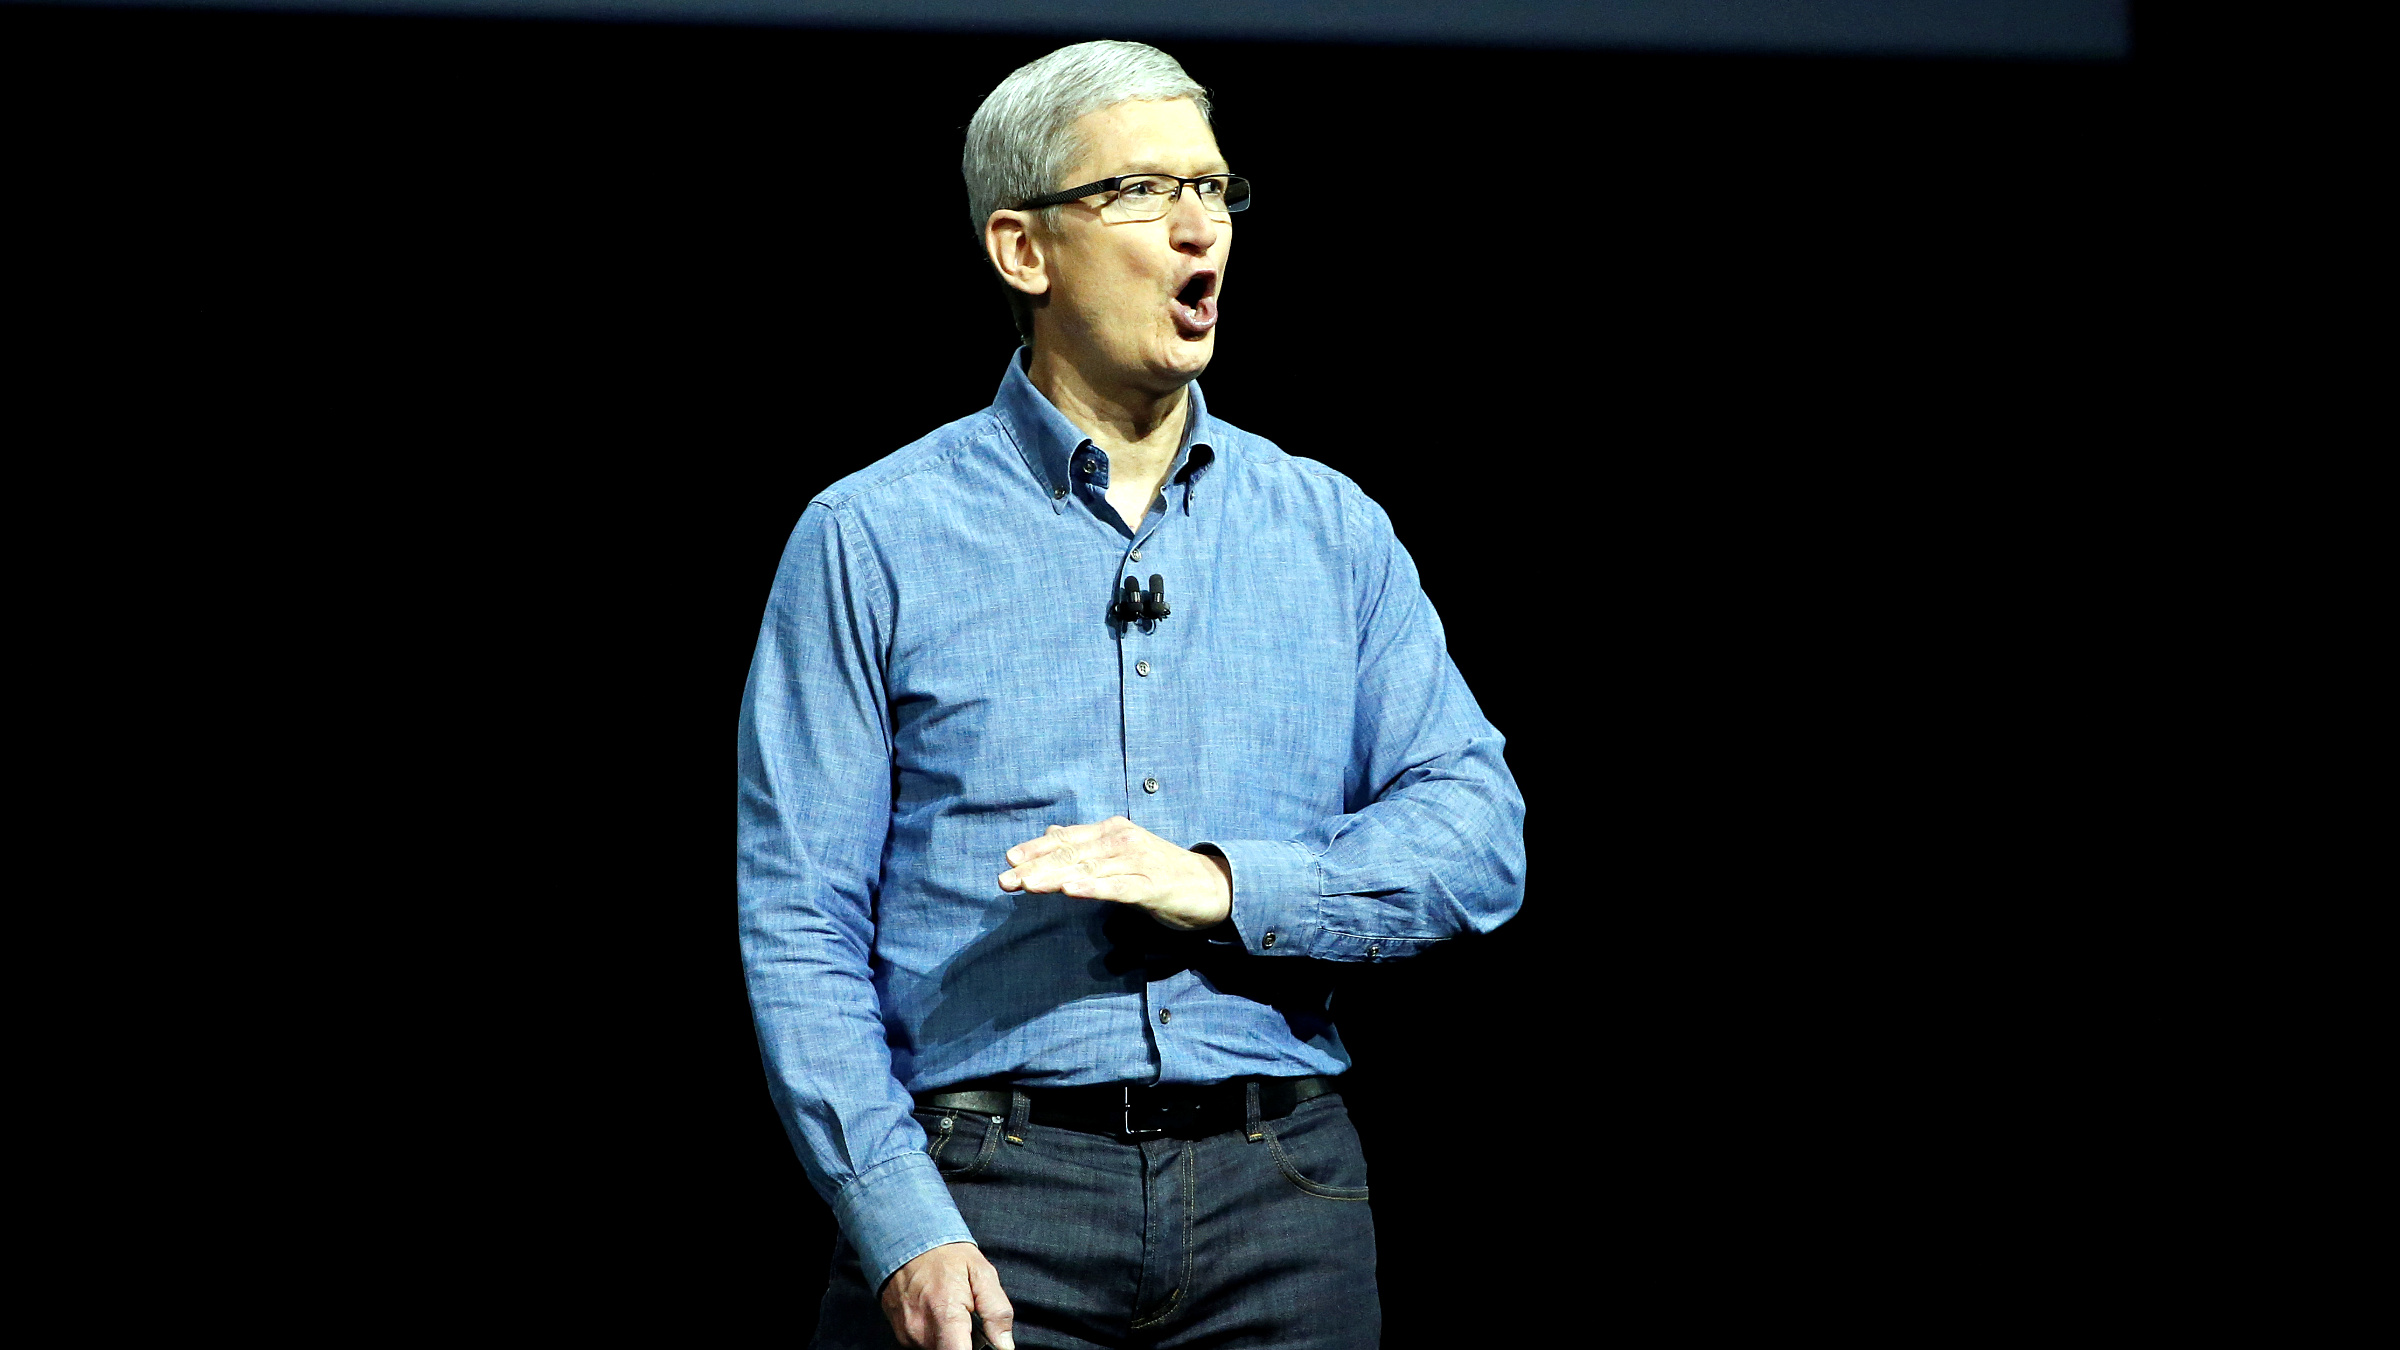 Apple Inc. CEO Tim Cook speaks on stage at the company's World Wide Developers Conference in San Francisco, California, U.S., June 13, 2016.